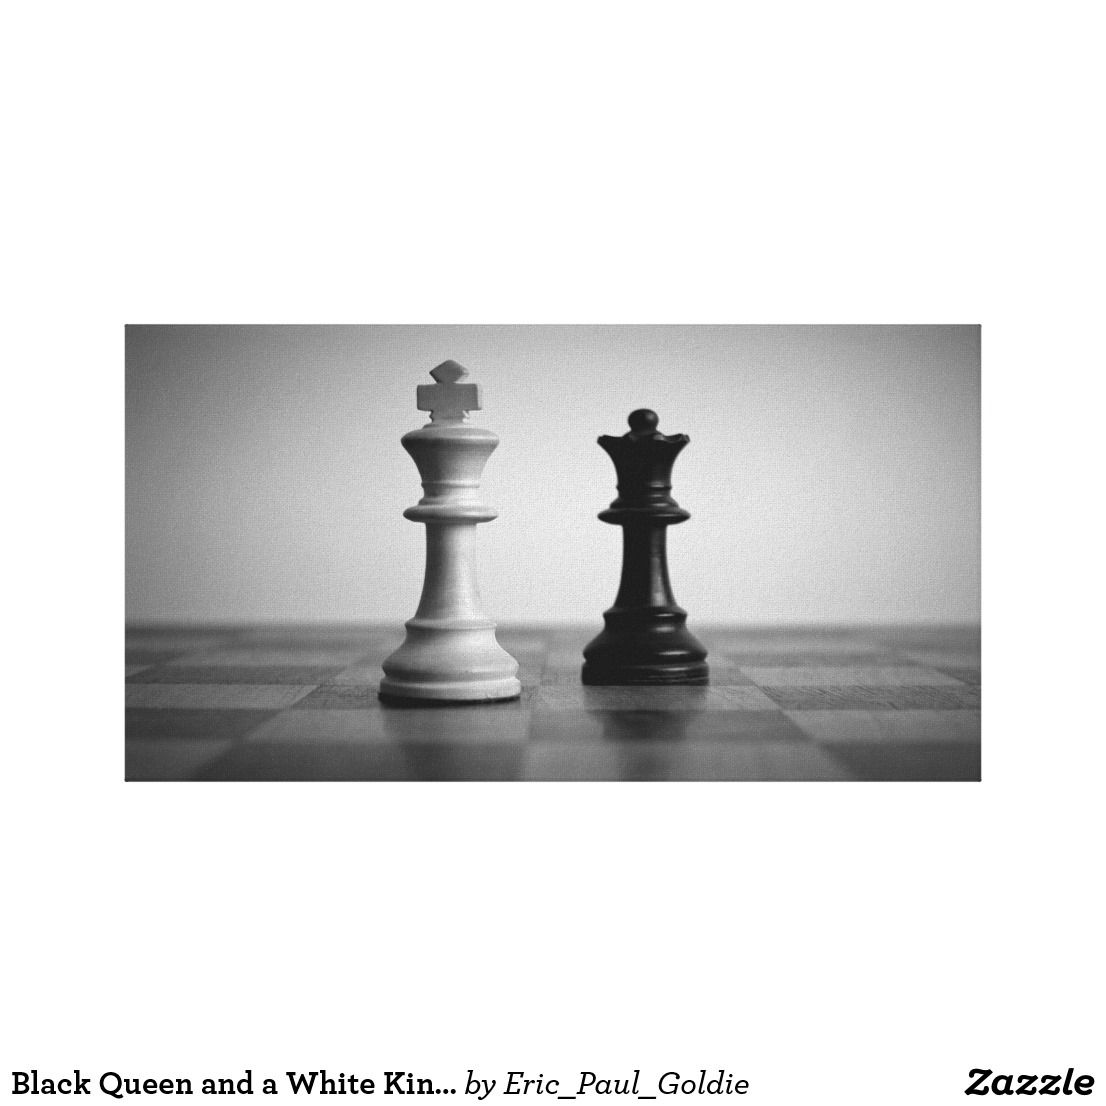 Black queen and a white king artistic photo chess art photography blackandwhite blackandwhitephotography canvasart